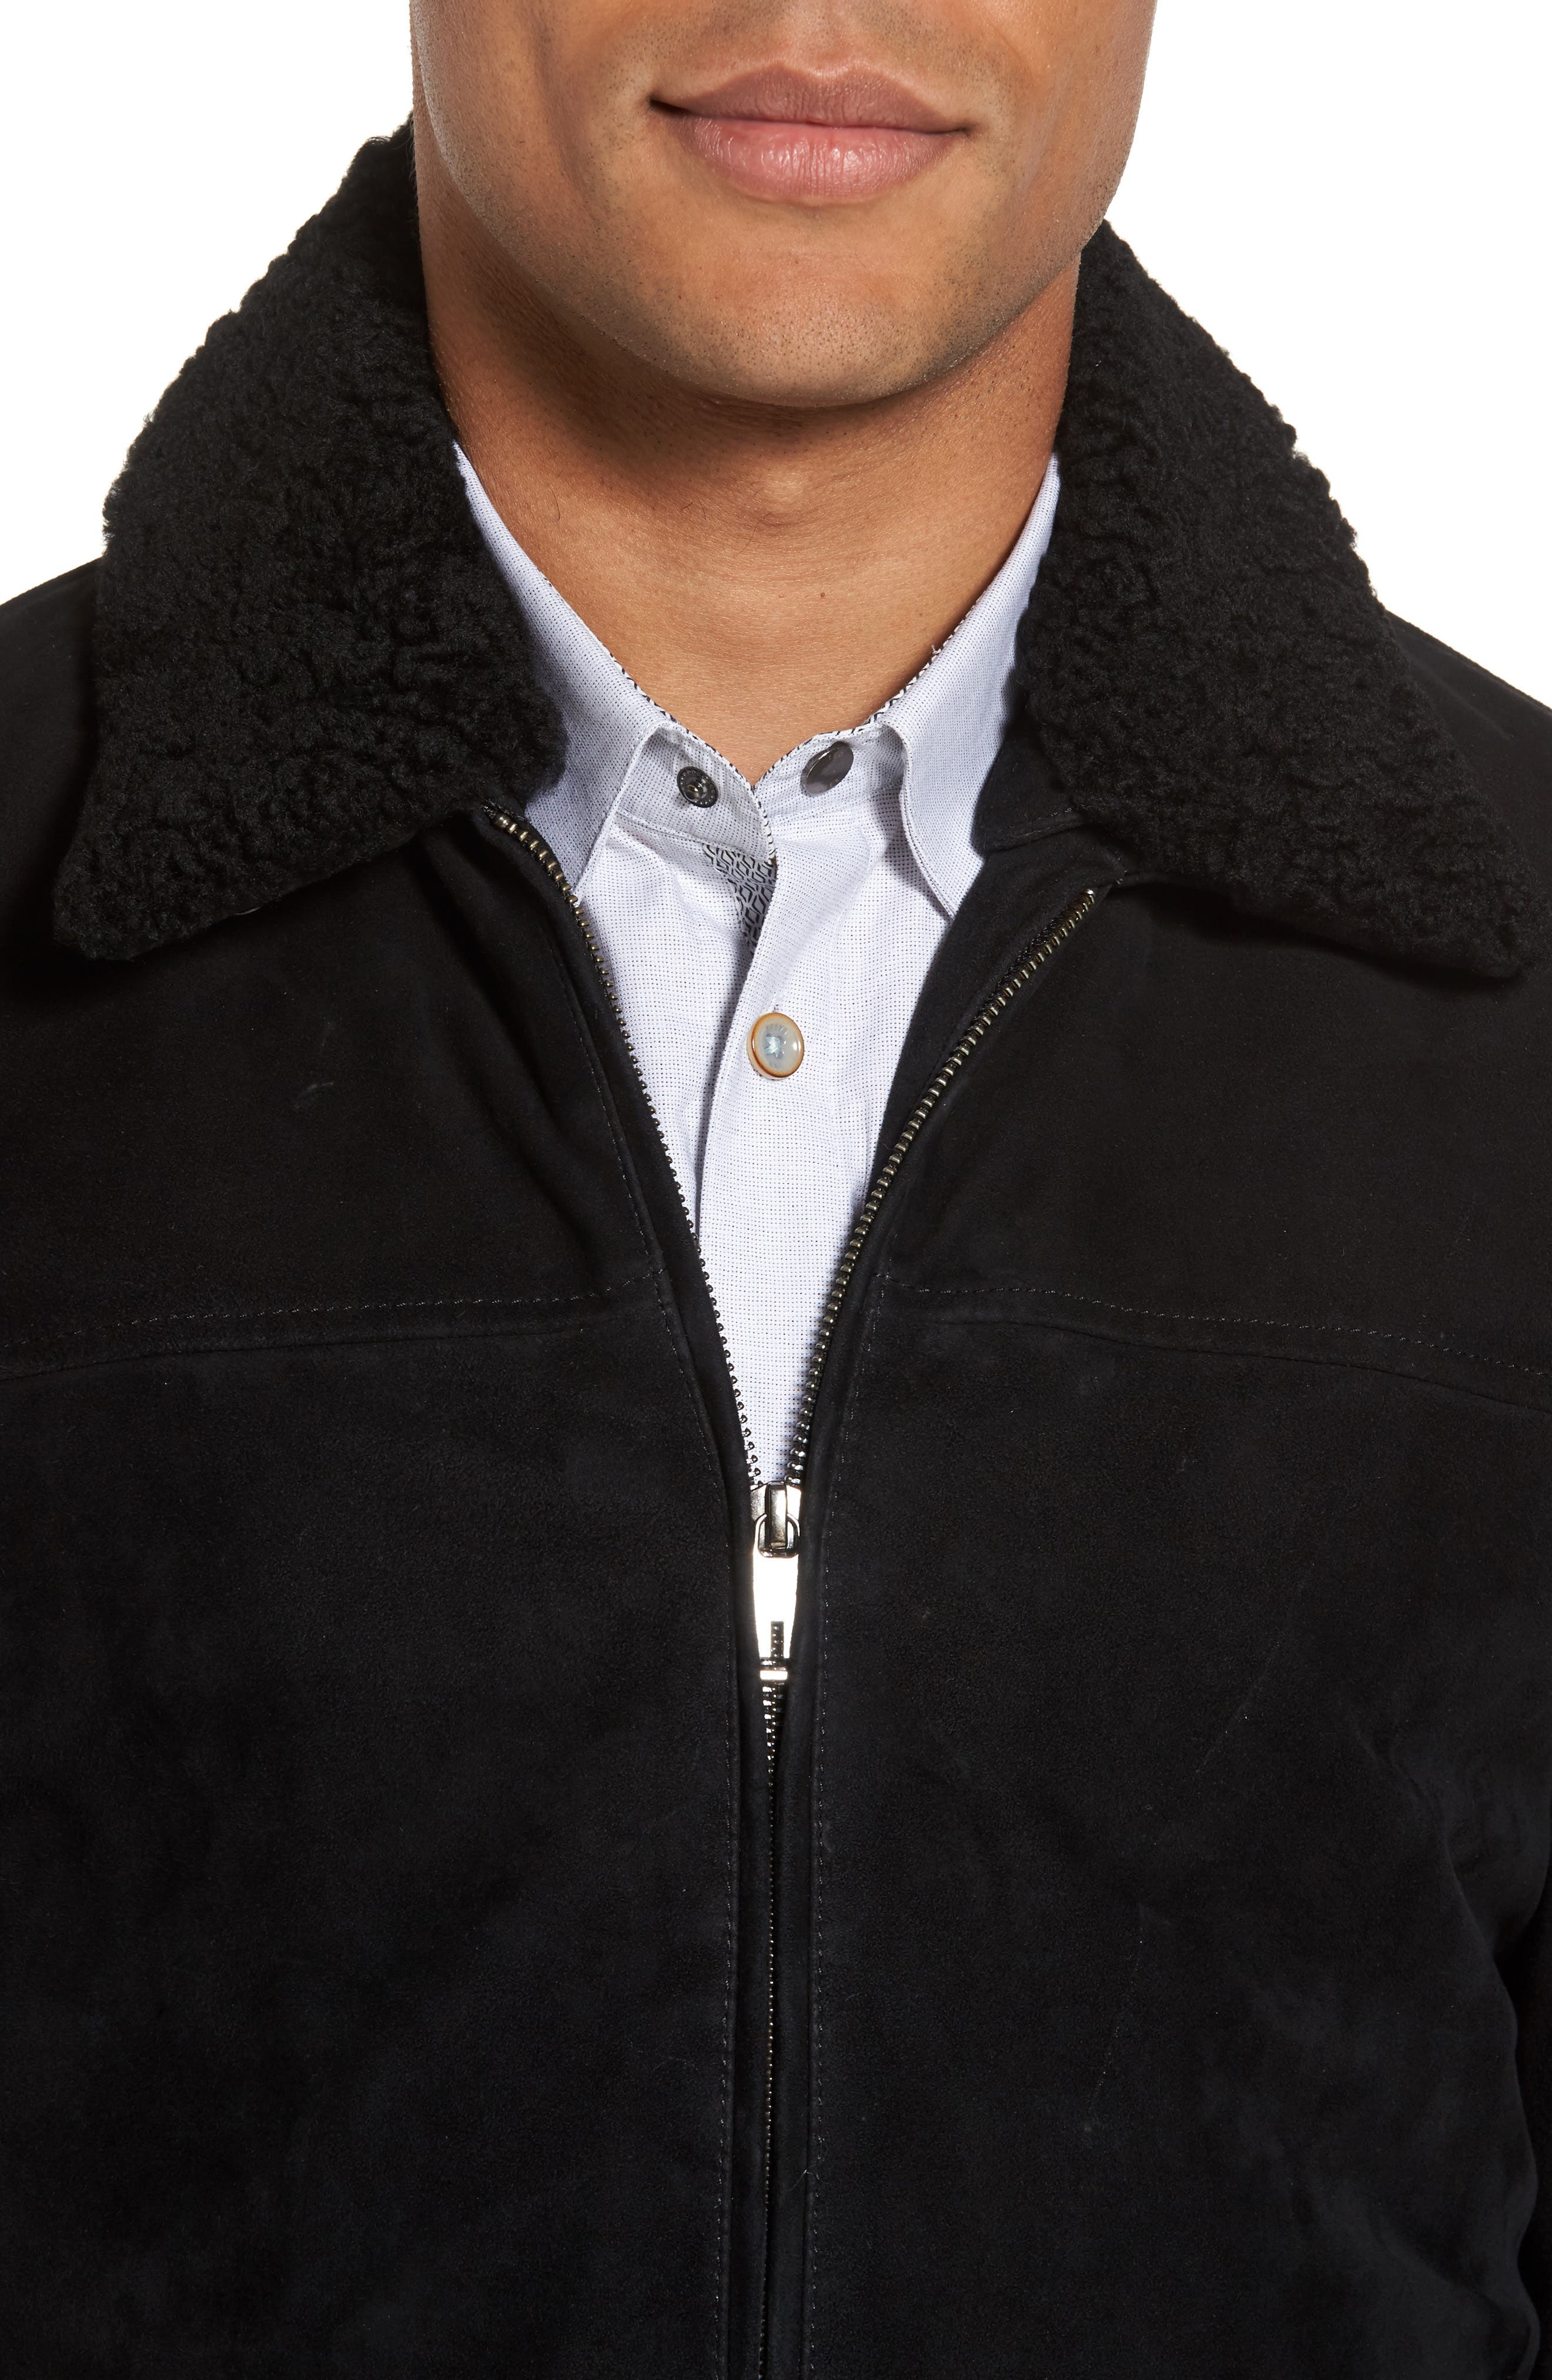 Genuine Shearling Collar Suede Jacket,                             Alternate thumbnail 4, color,                             001